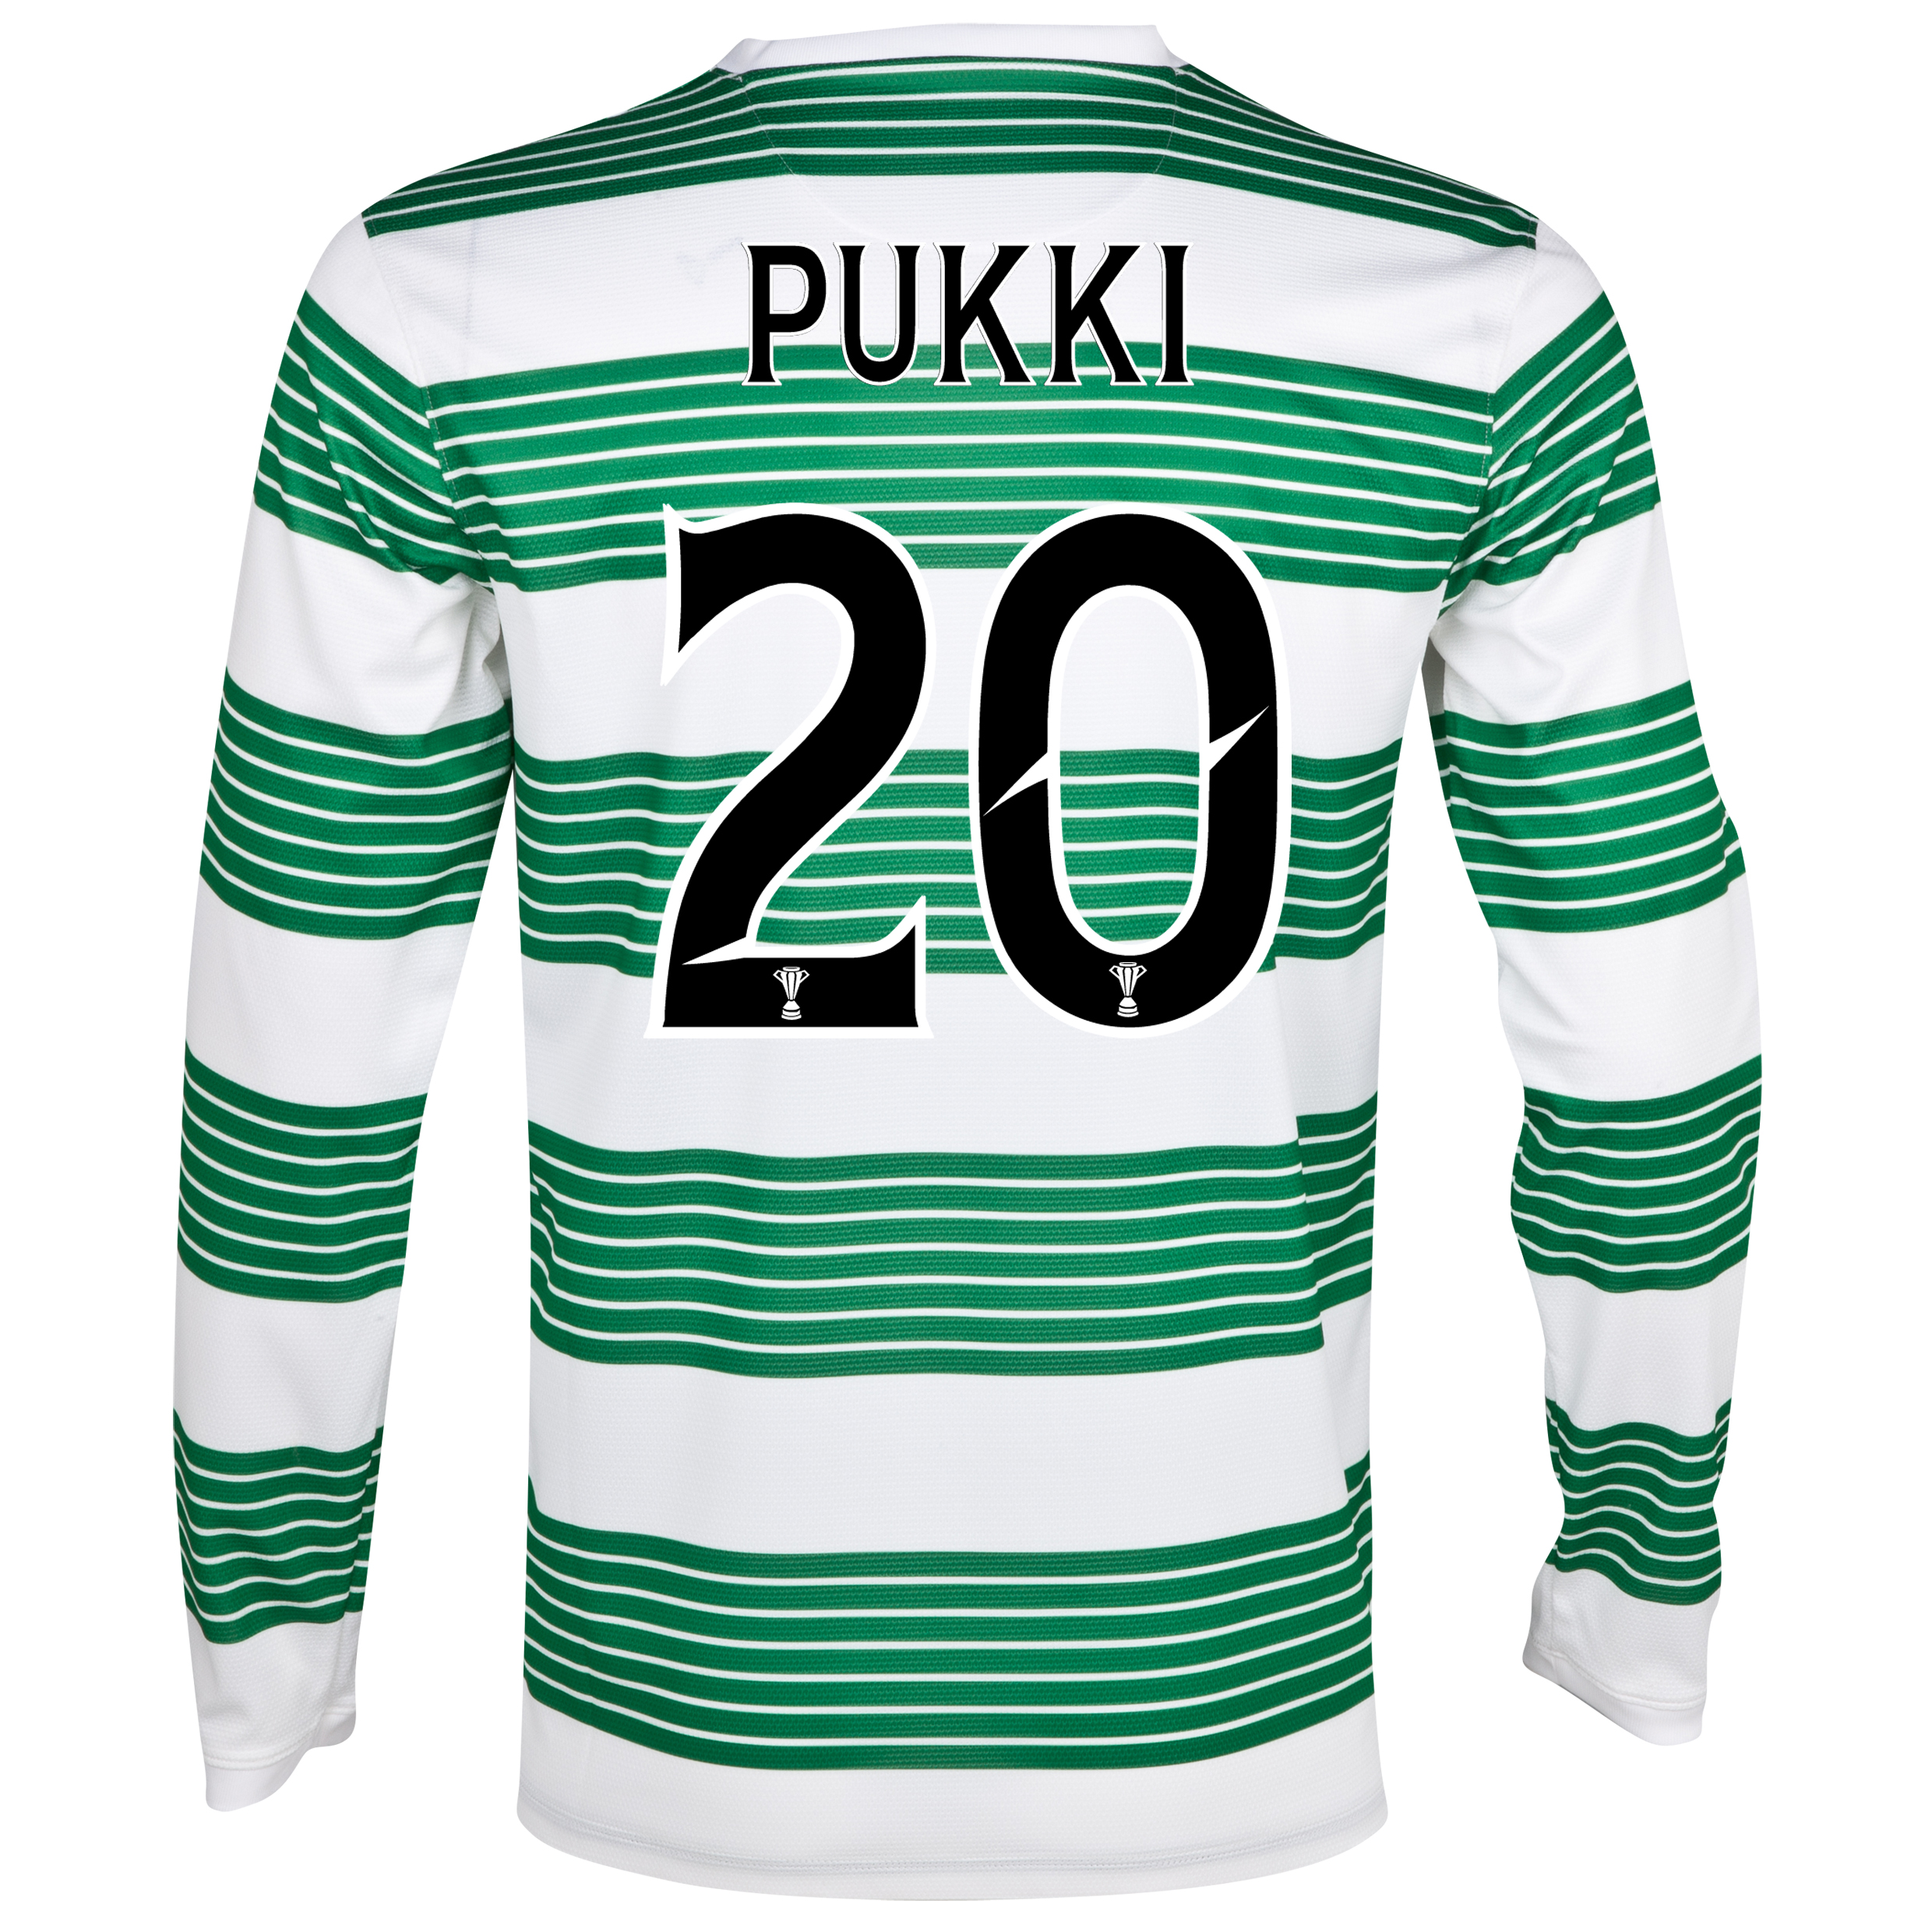 Celtic Home Shirt 2013/15 - L/S- With Sponsor with Pukki 20 printing